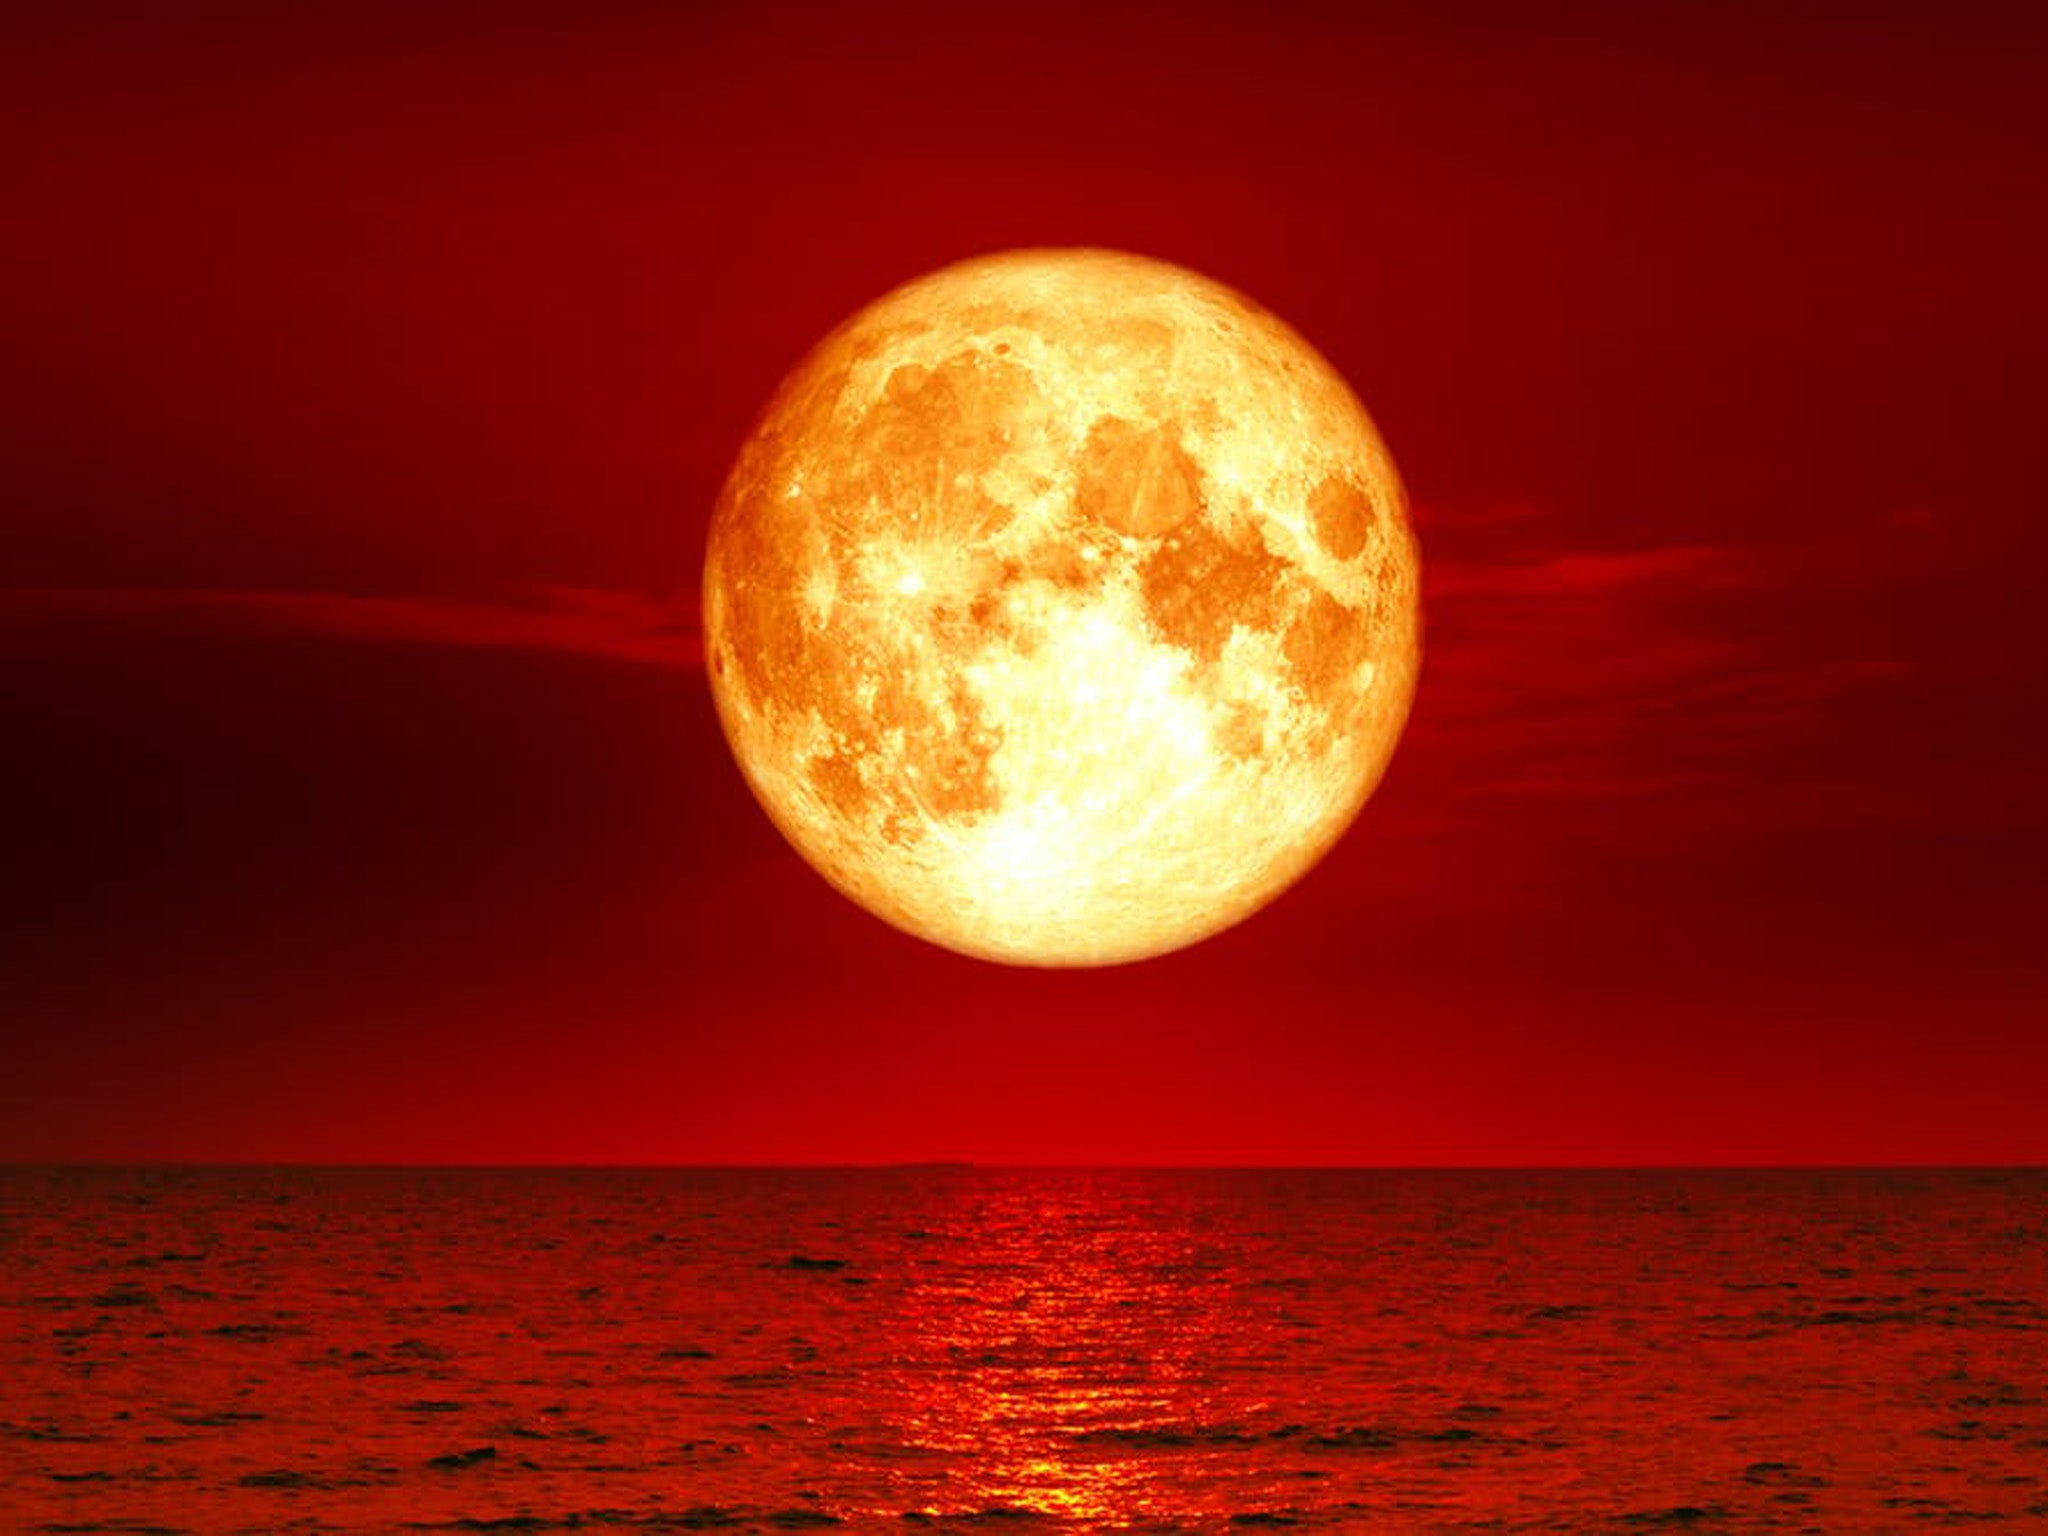 red moon tonight greece - photo #23